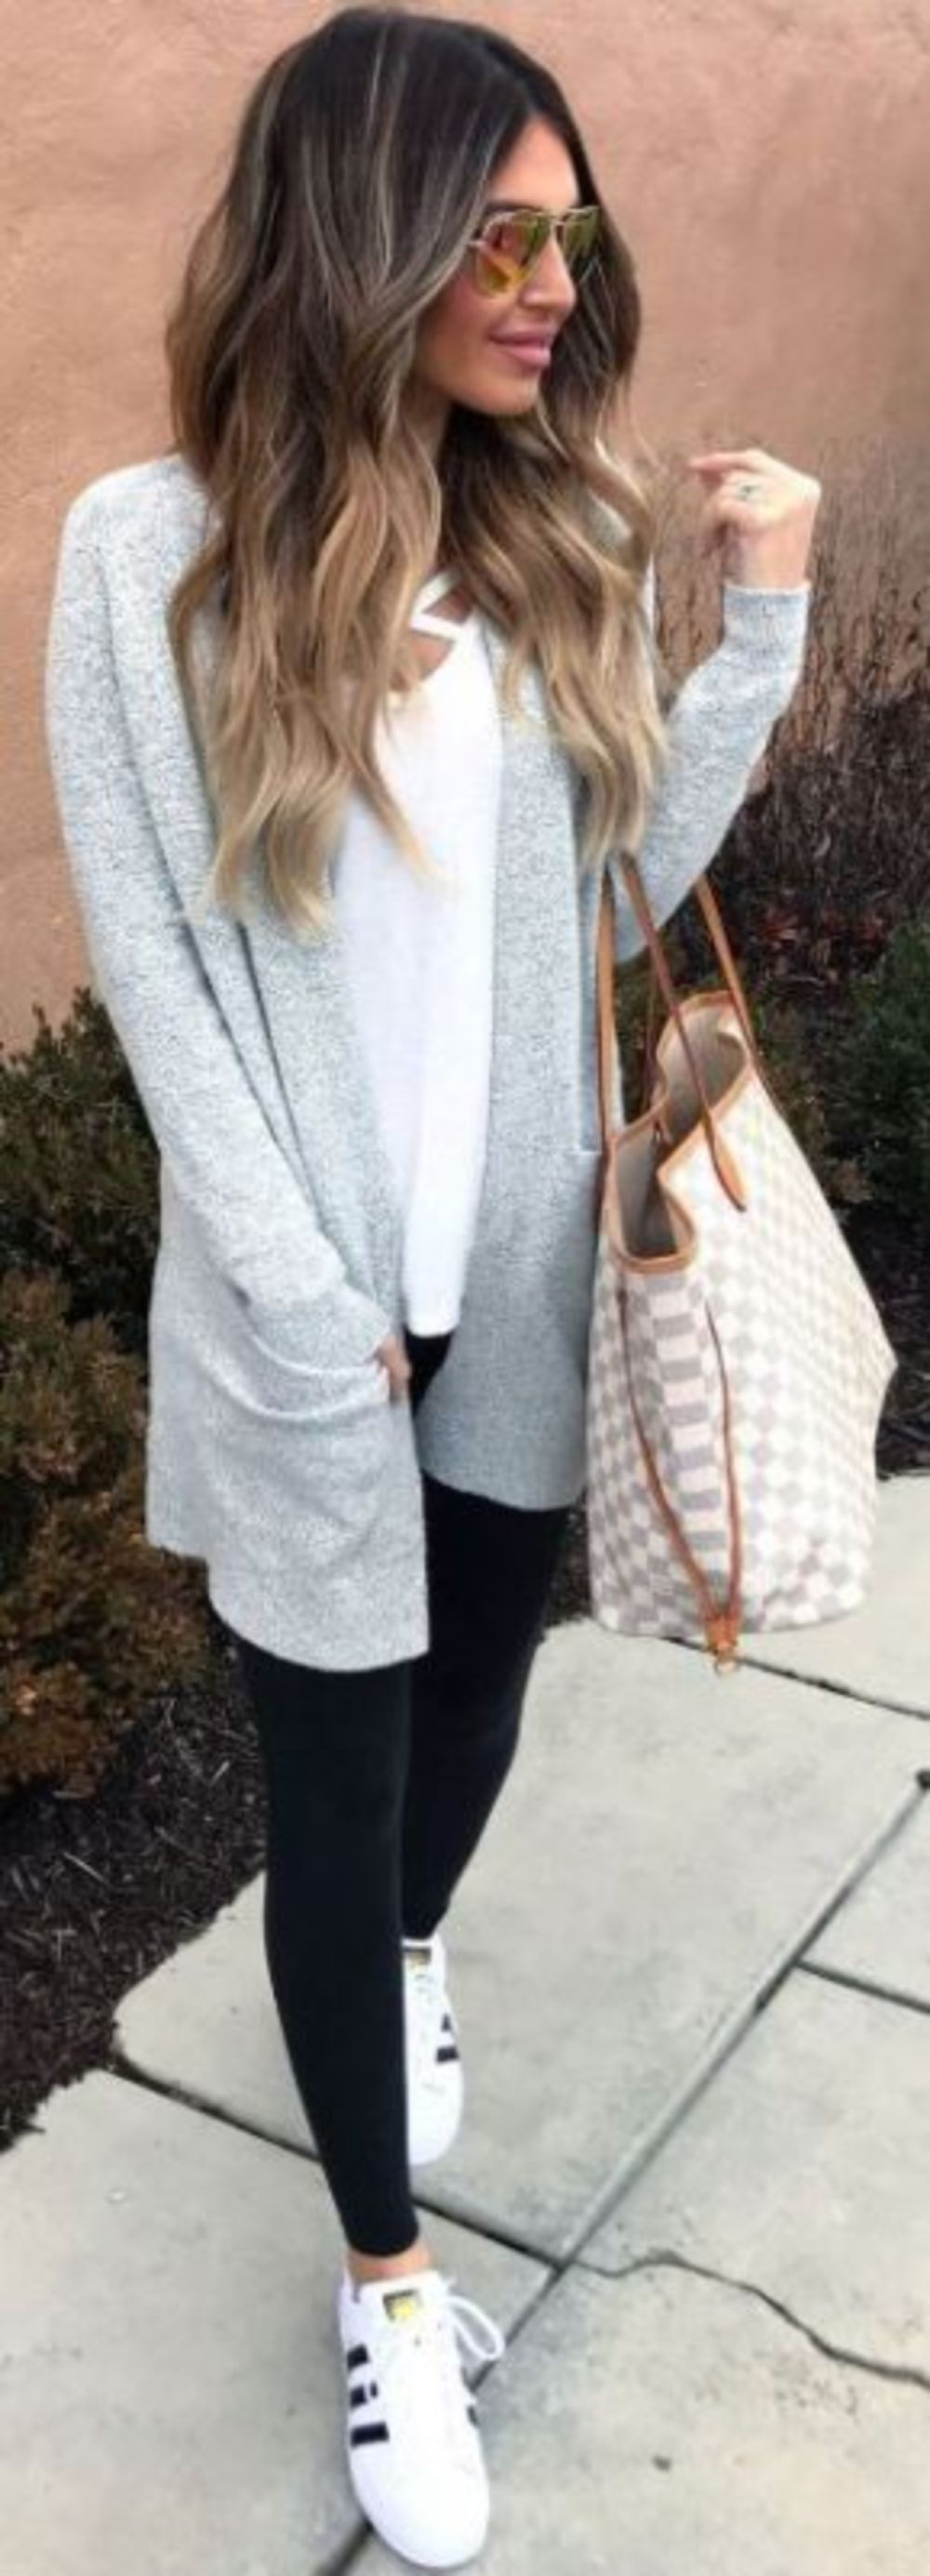 35 trending fall outfits ideas to get inspire | clothes, fall